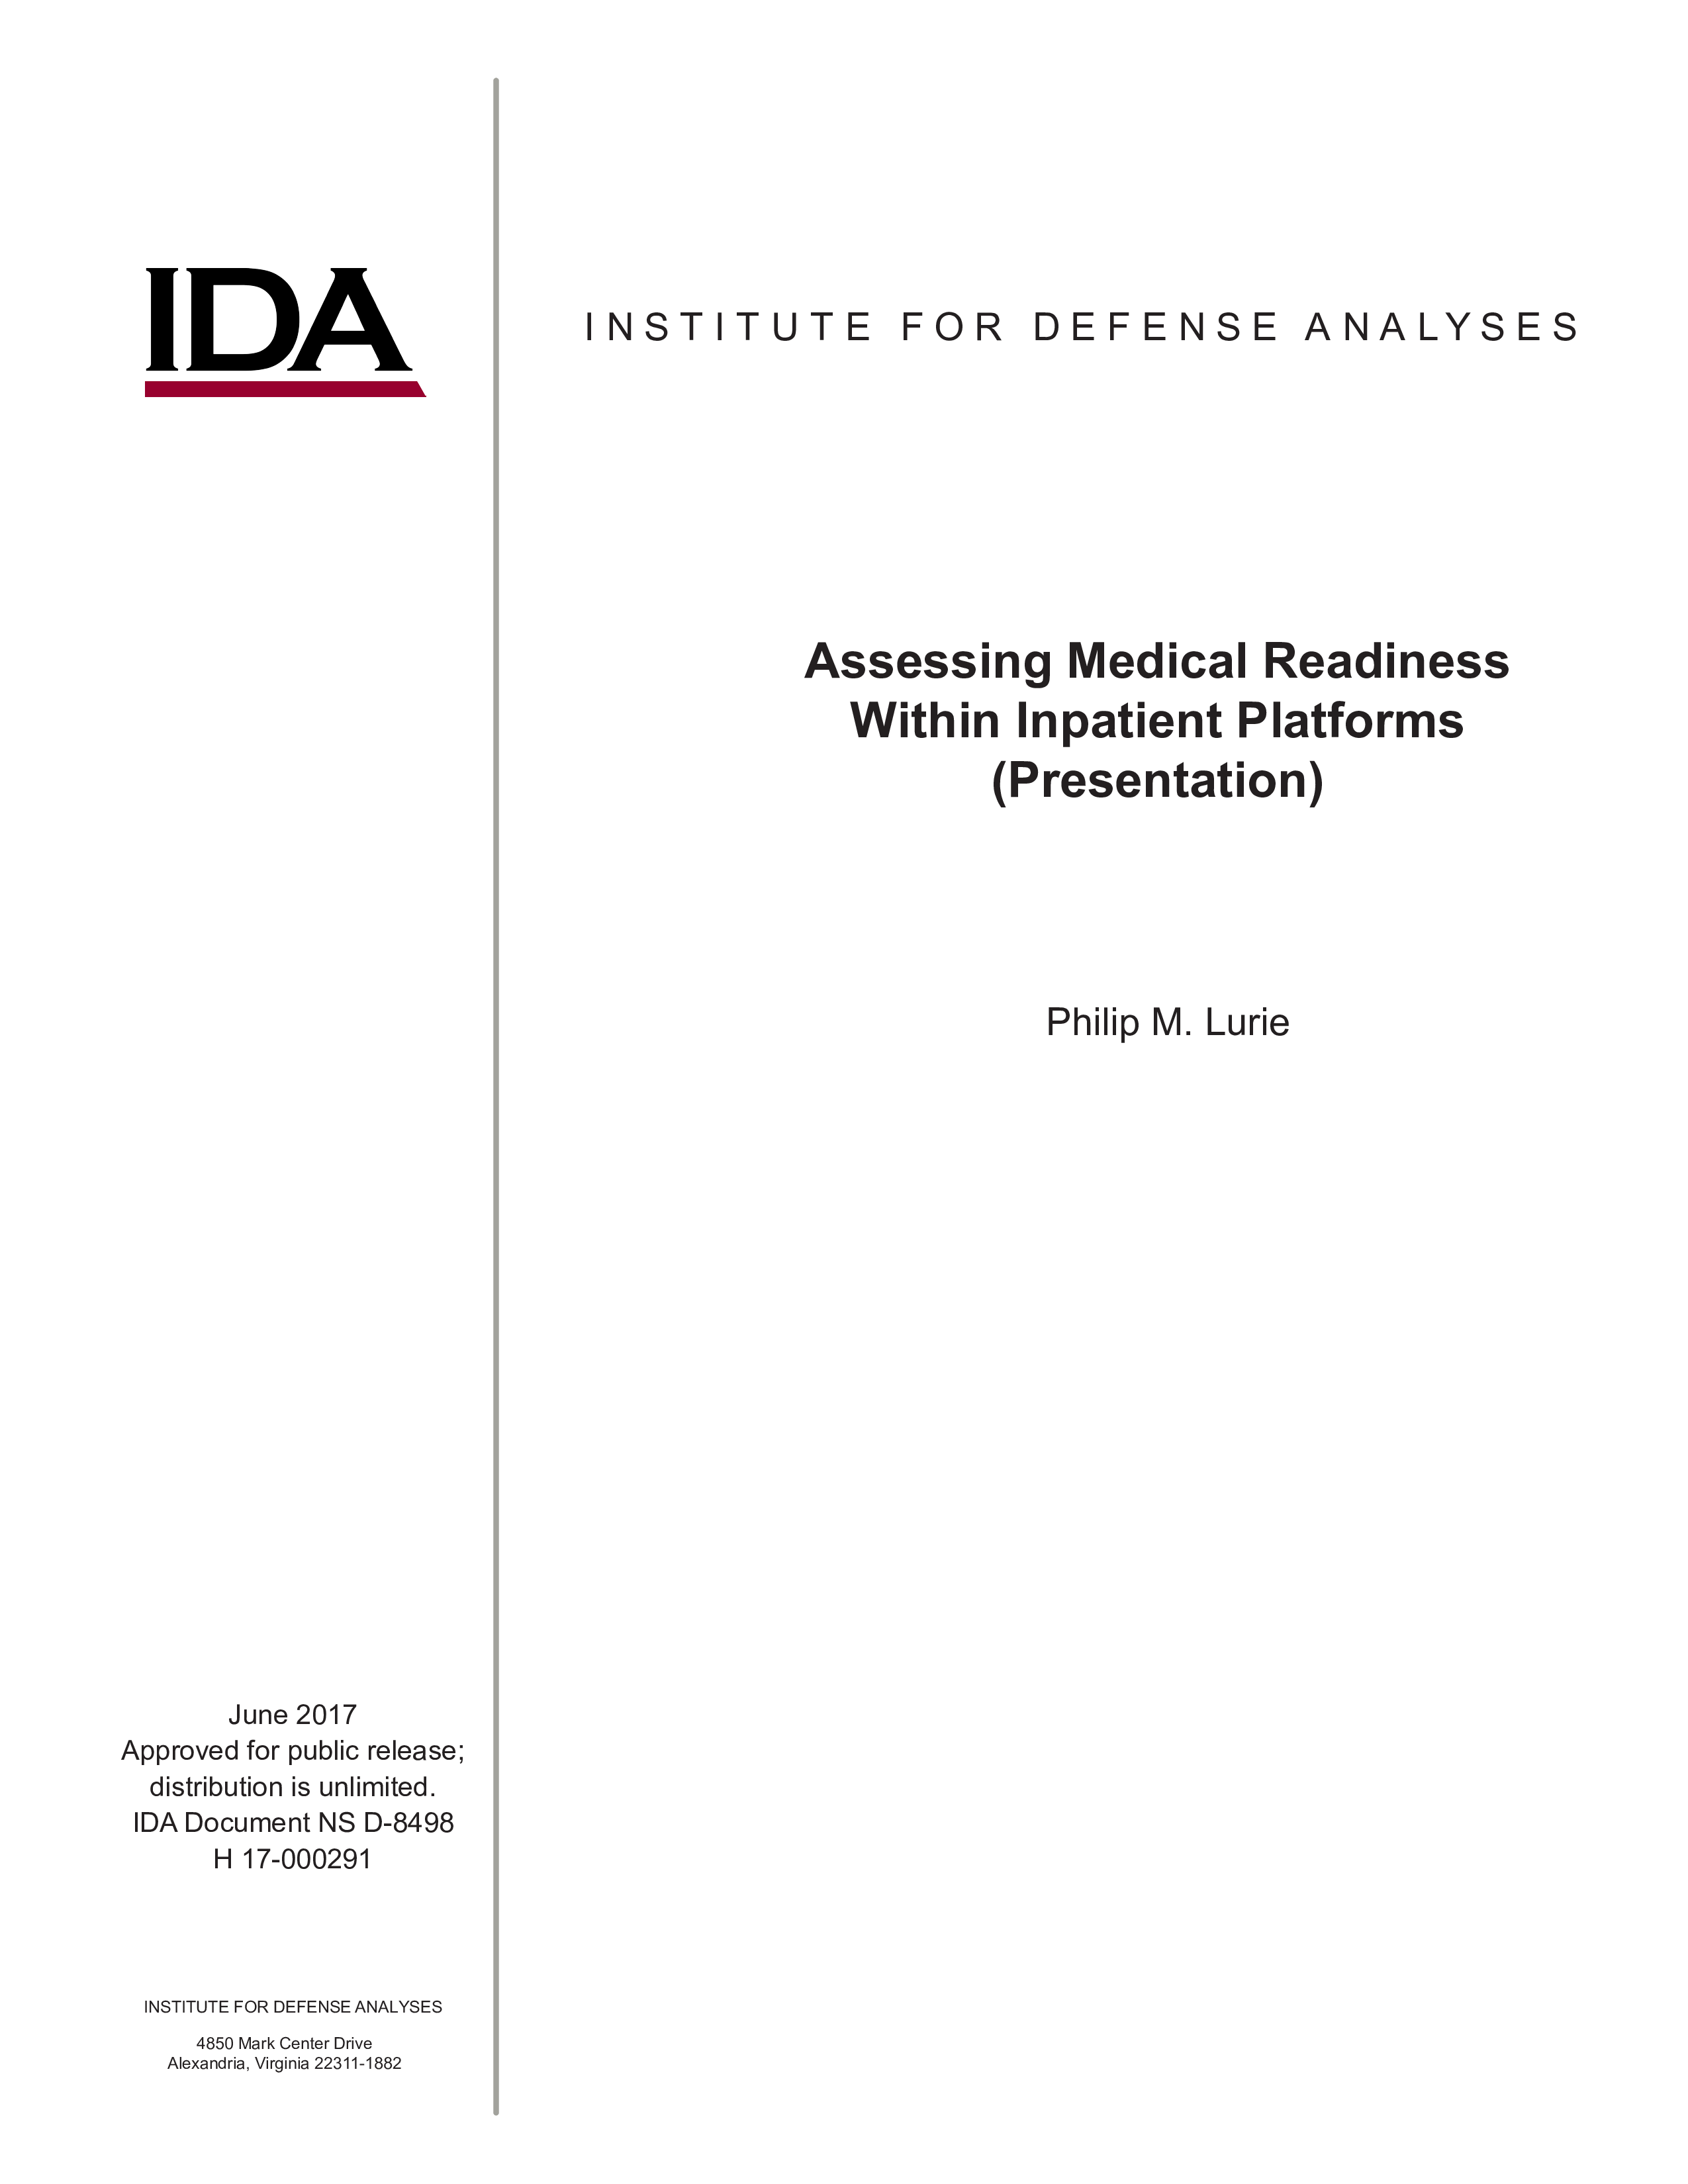 Assessing Medical Readiness Within Inpatient Platforms (Presentation)